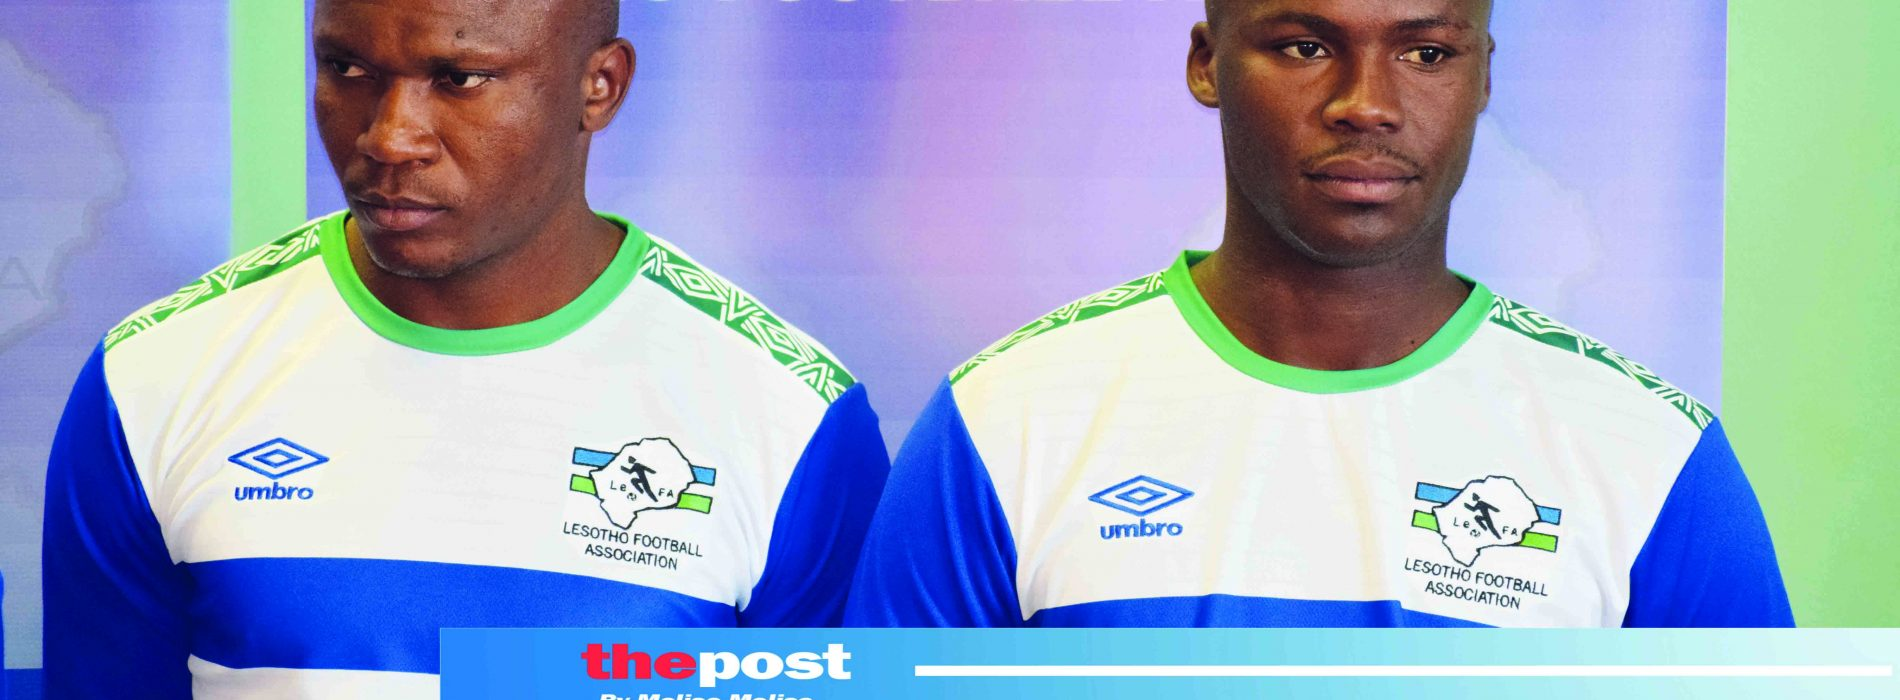 New kit for Likuena